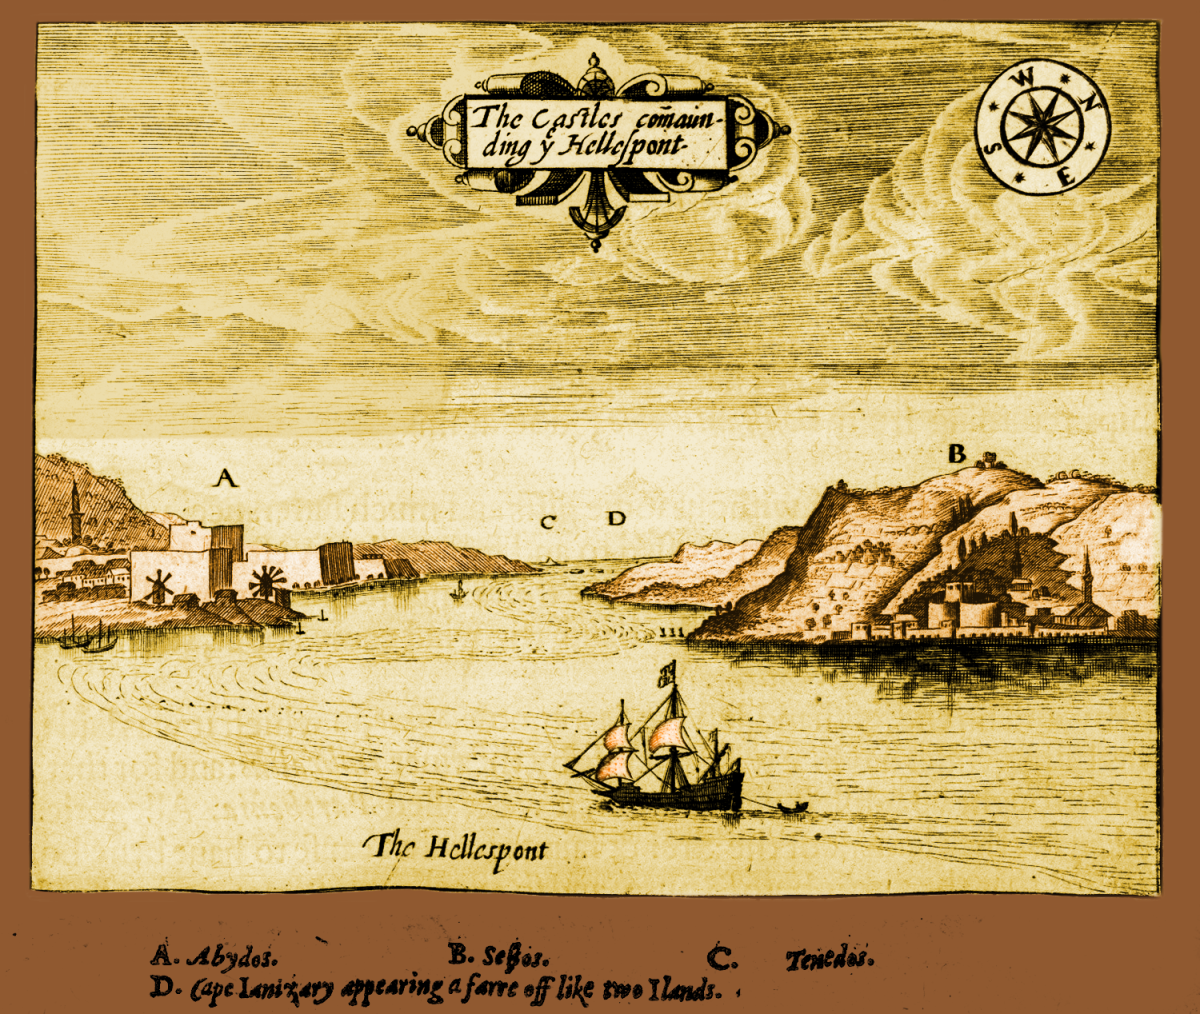 Colorized version of George Sandys' The Castles Commanding y Hellespont, 1615. Source: Wikimedia Commons